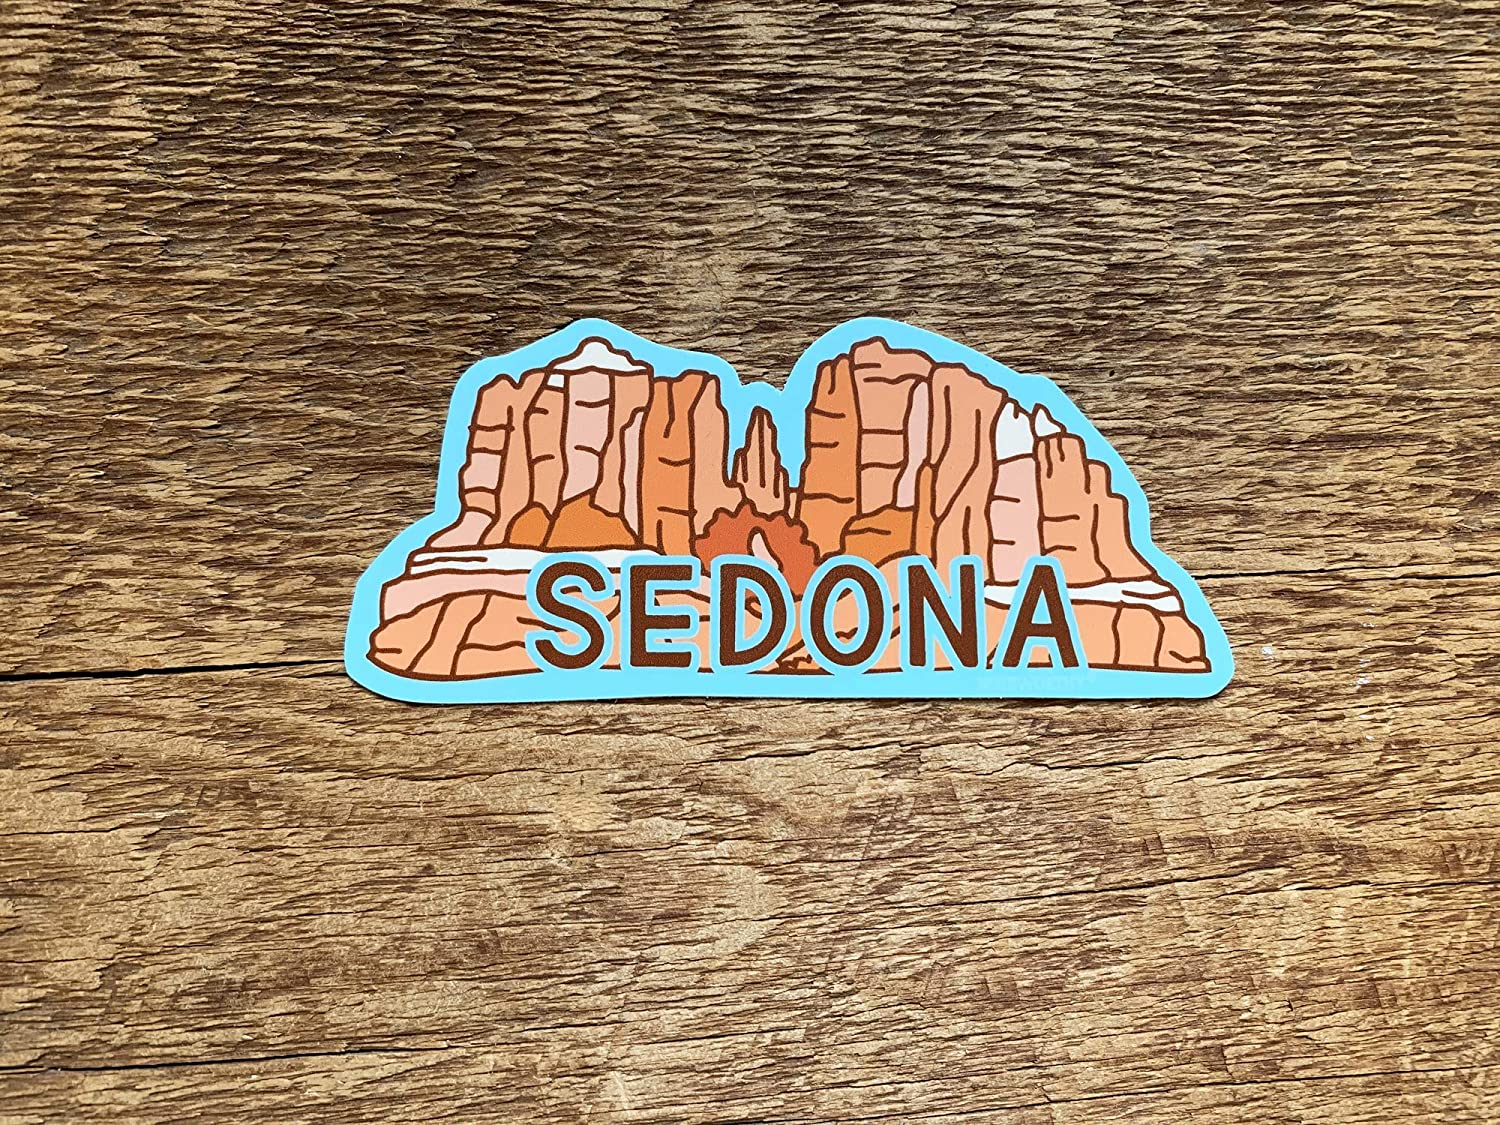 Sedona Sticker, Sedona Arizona Sticker, Bumper Sticker, Single Die Cut Vinyl Sticker